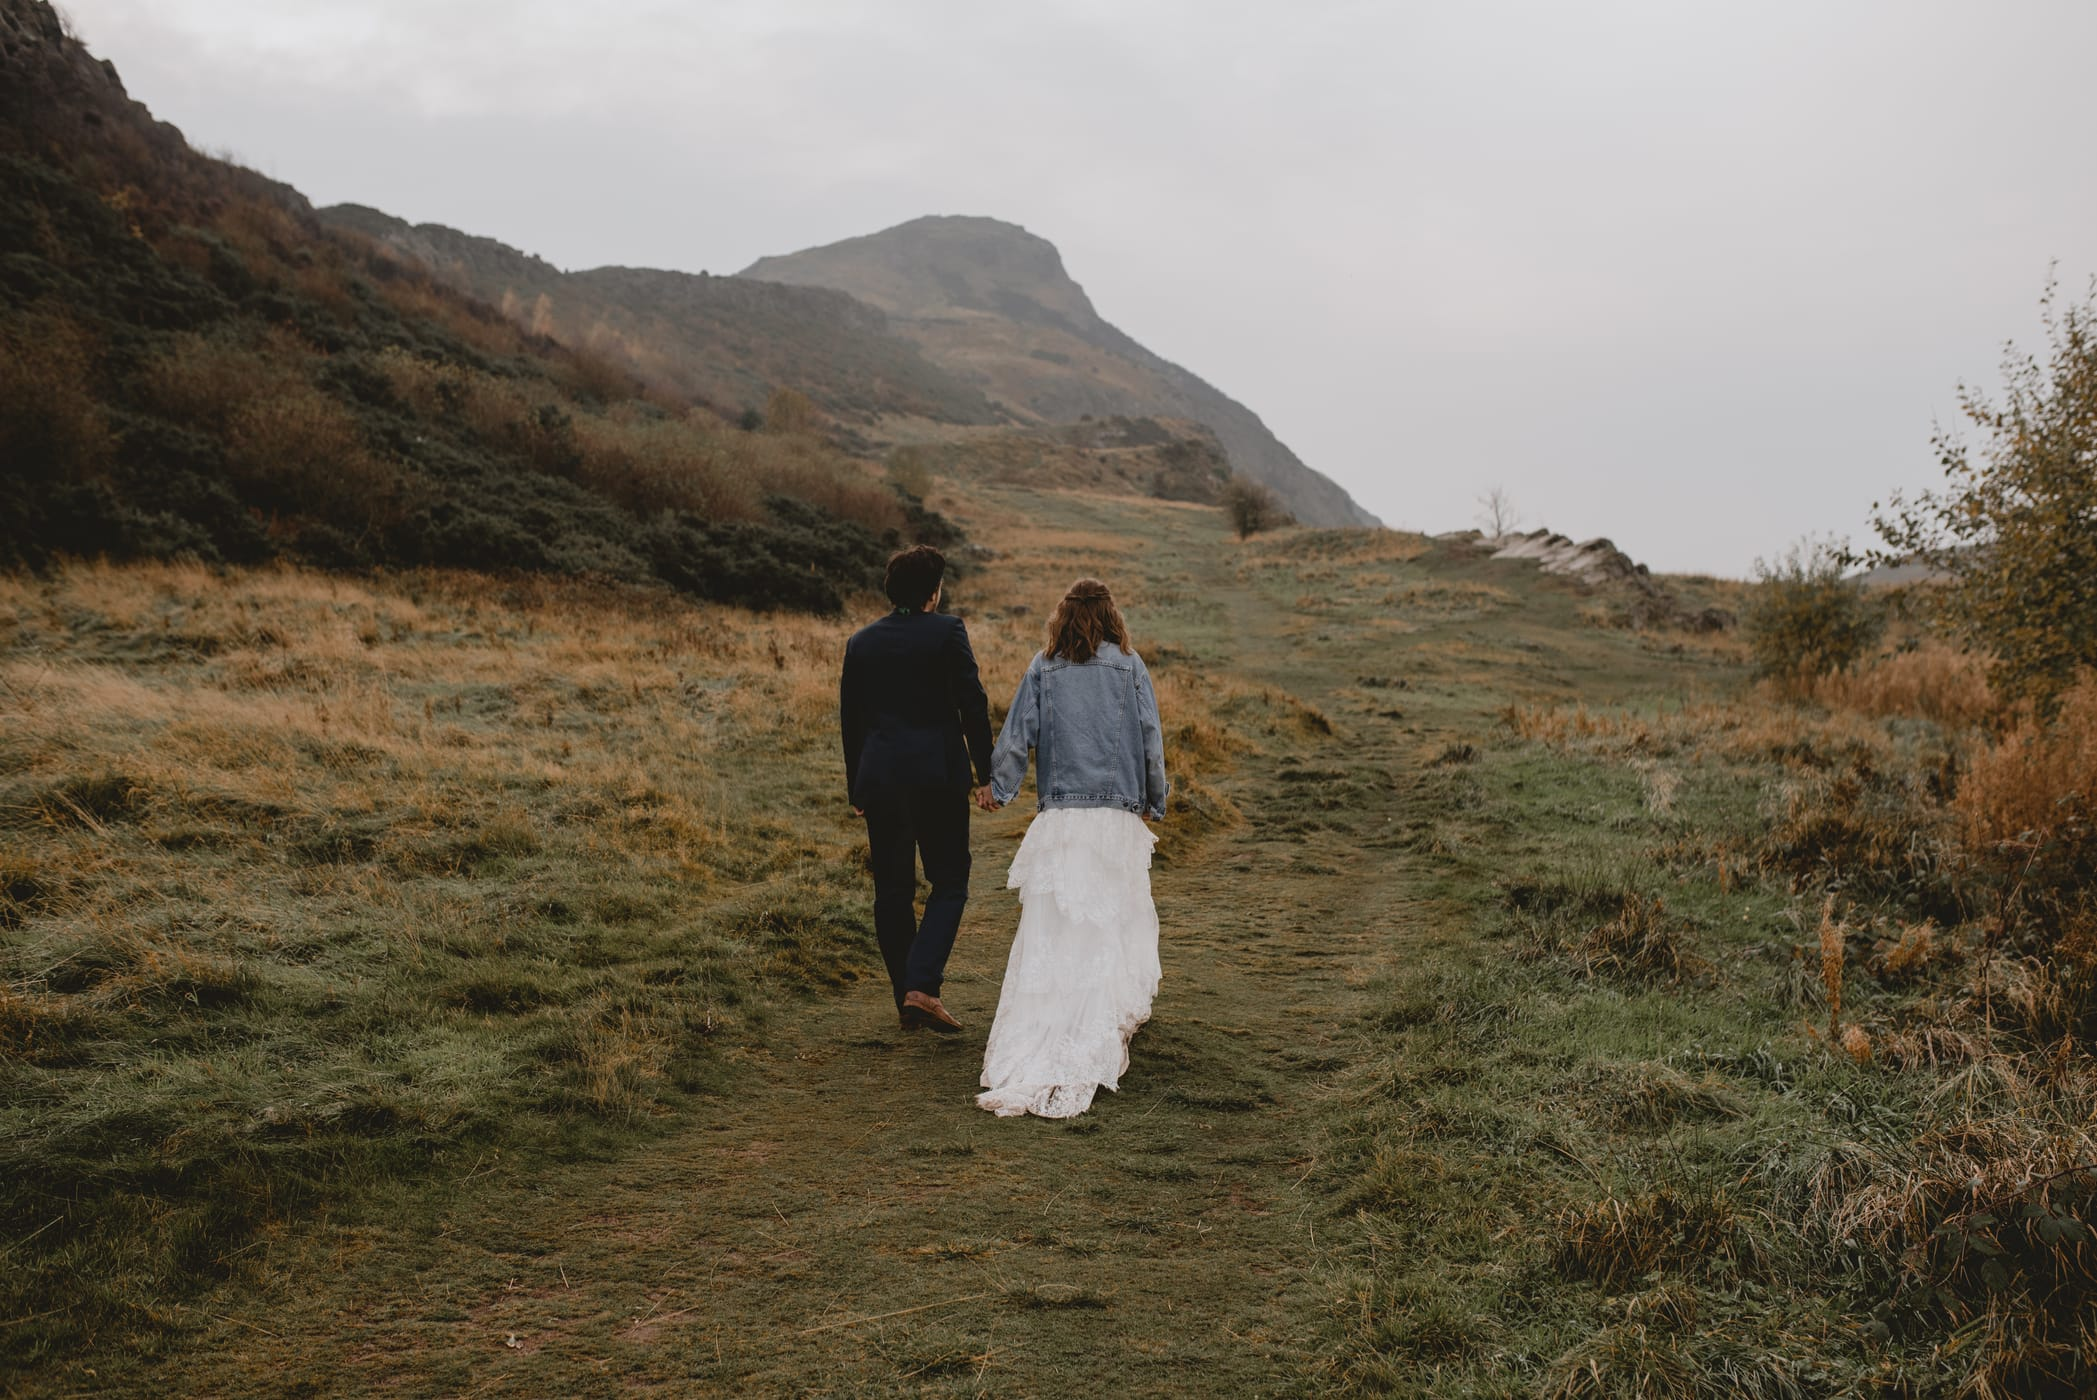 Planning an elopement abroad